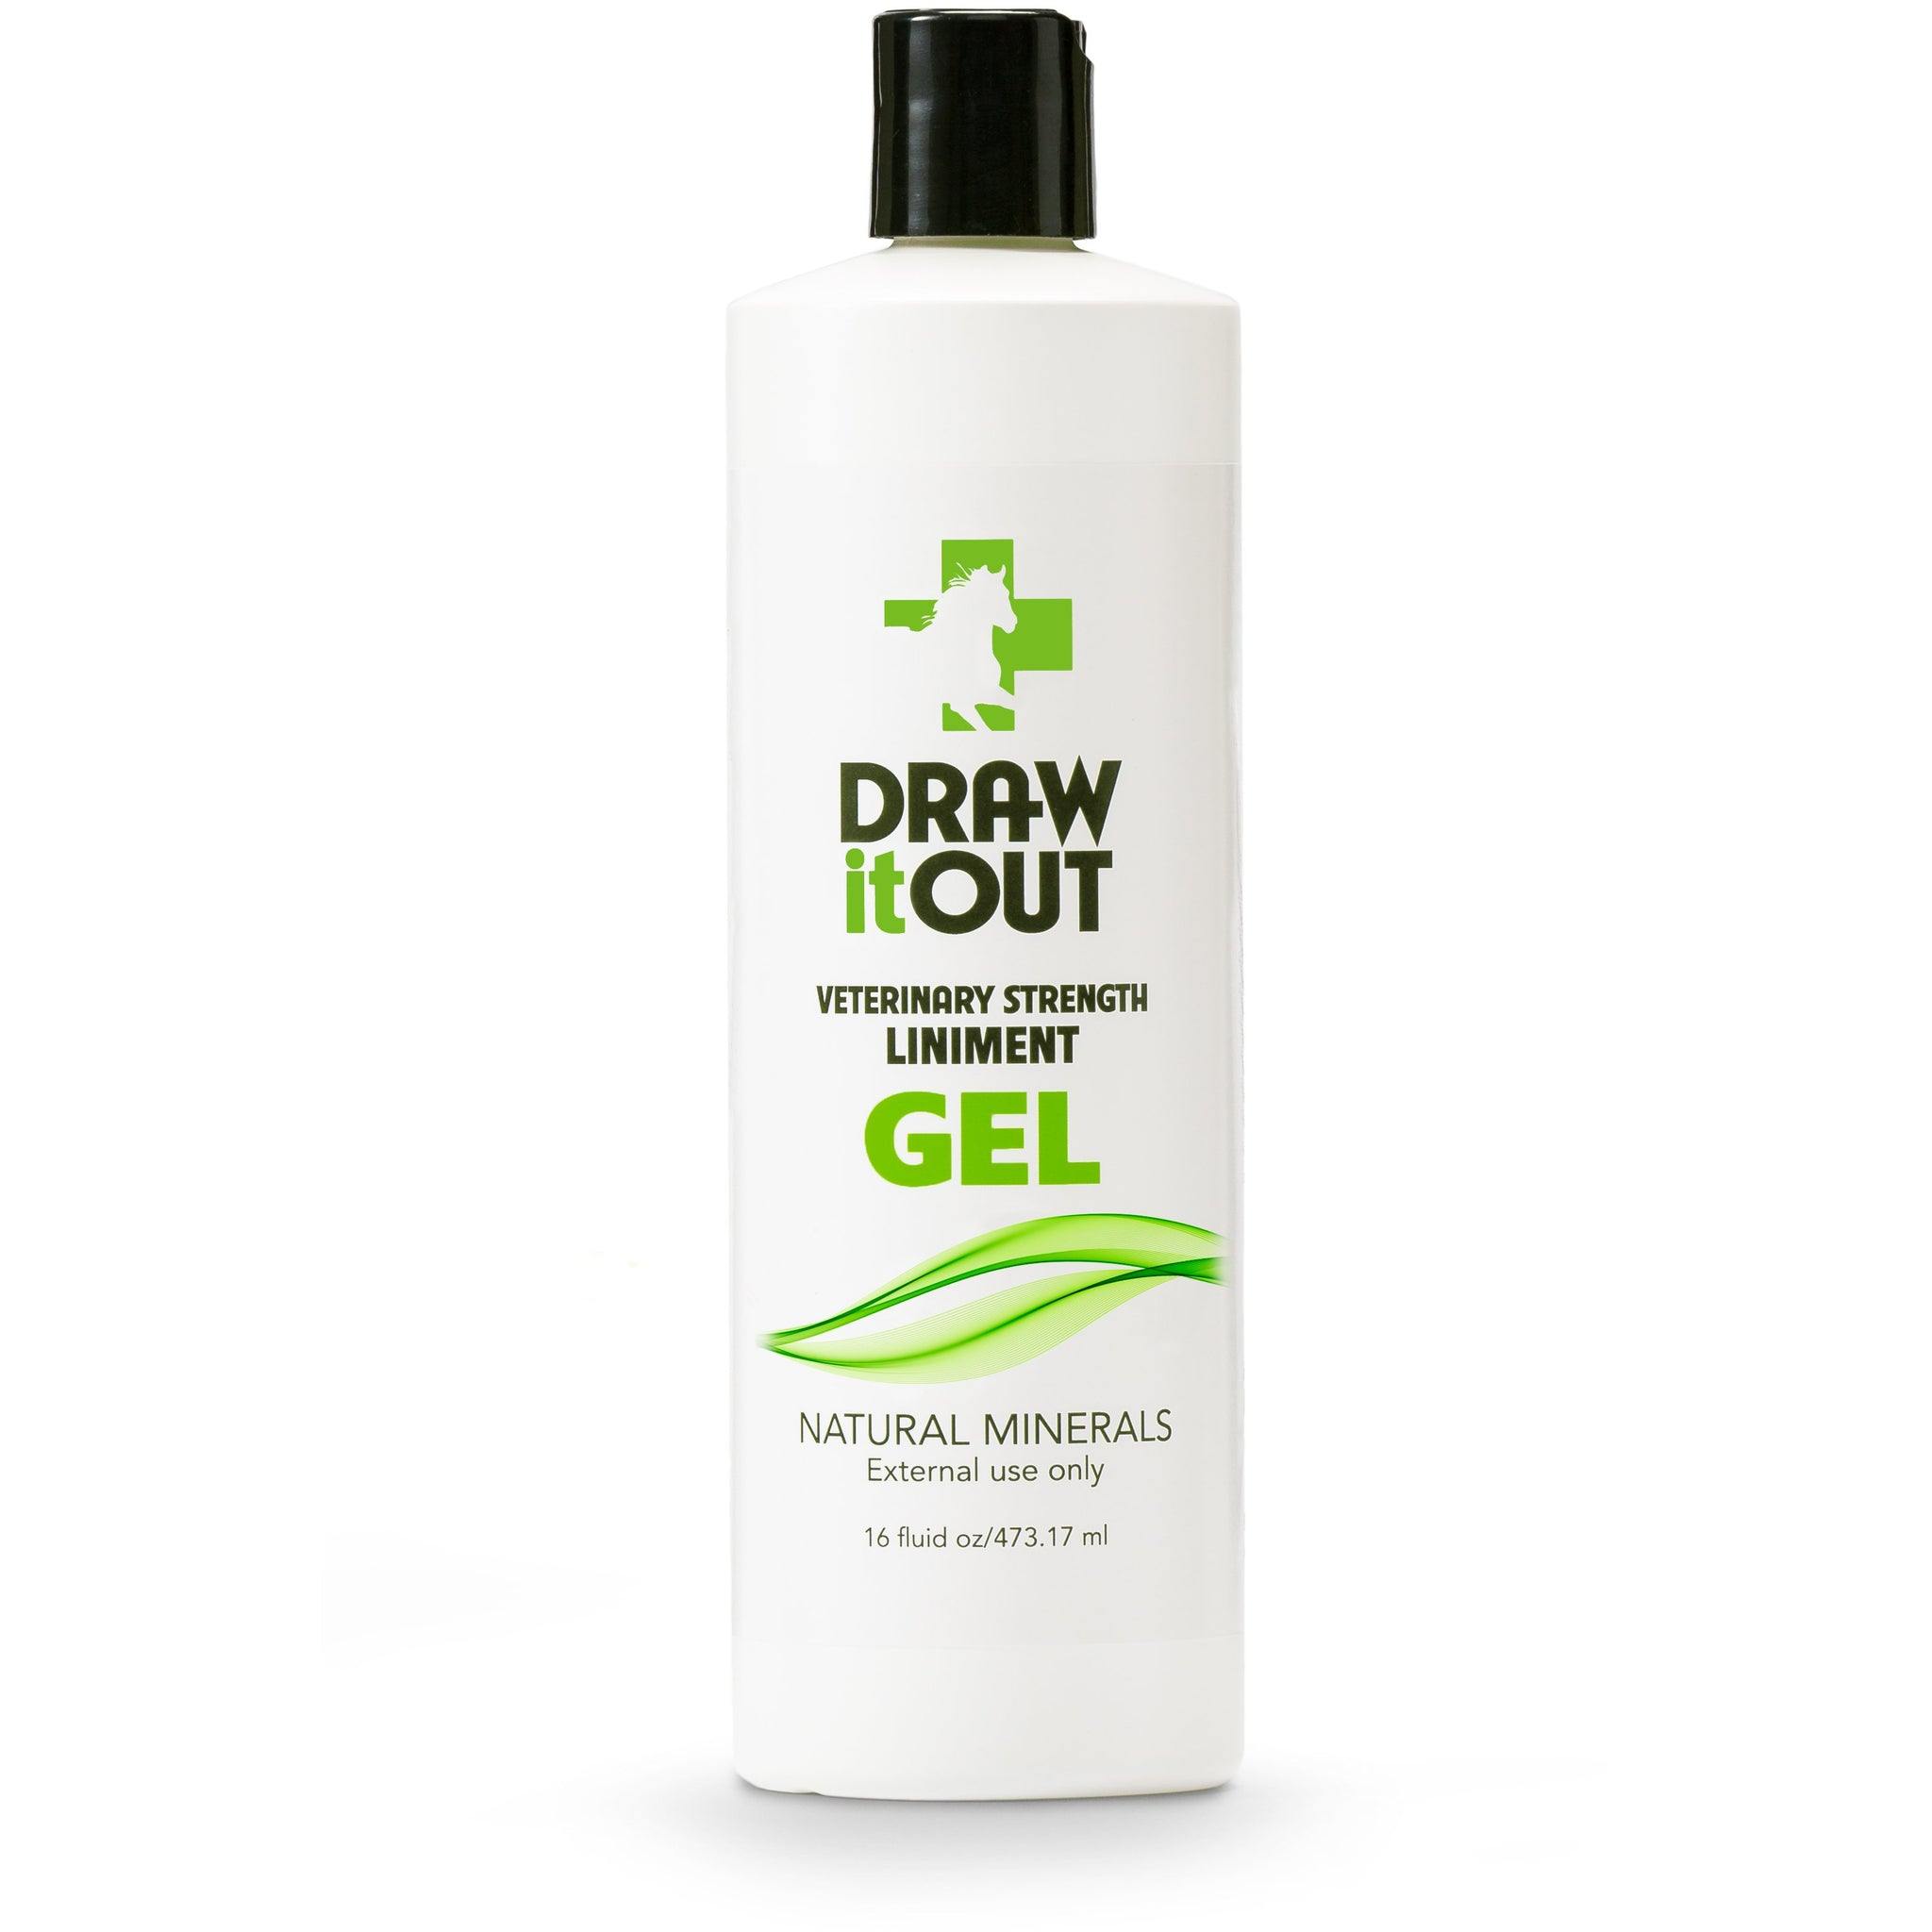 Draw It Out Horse Liniment 16oz GEL